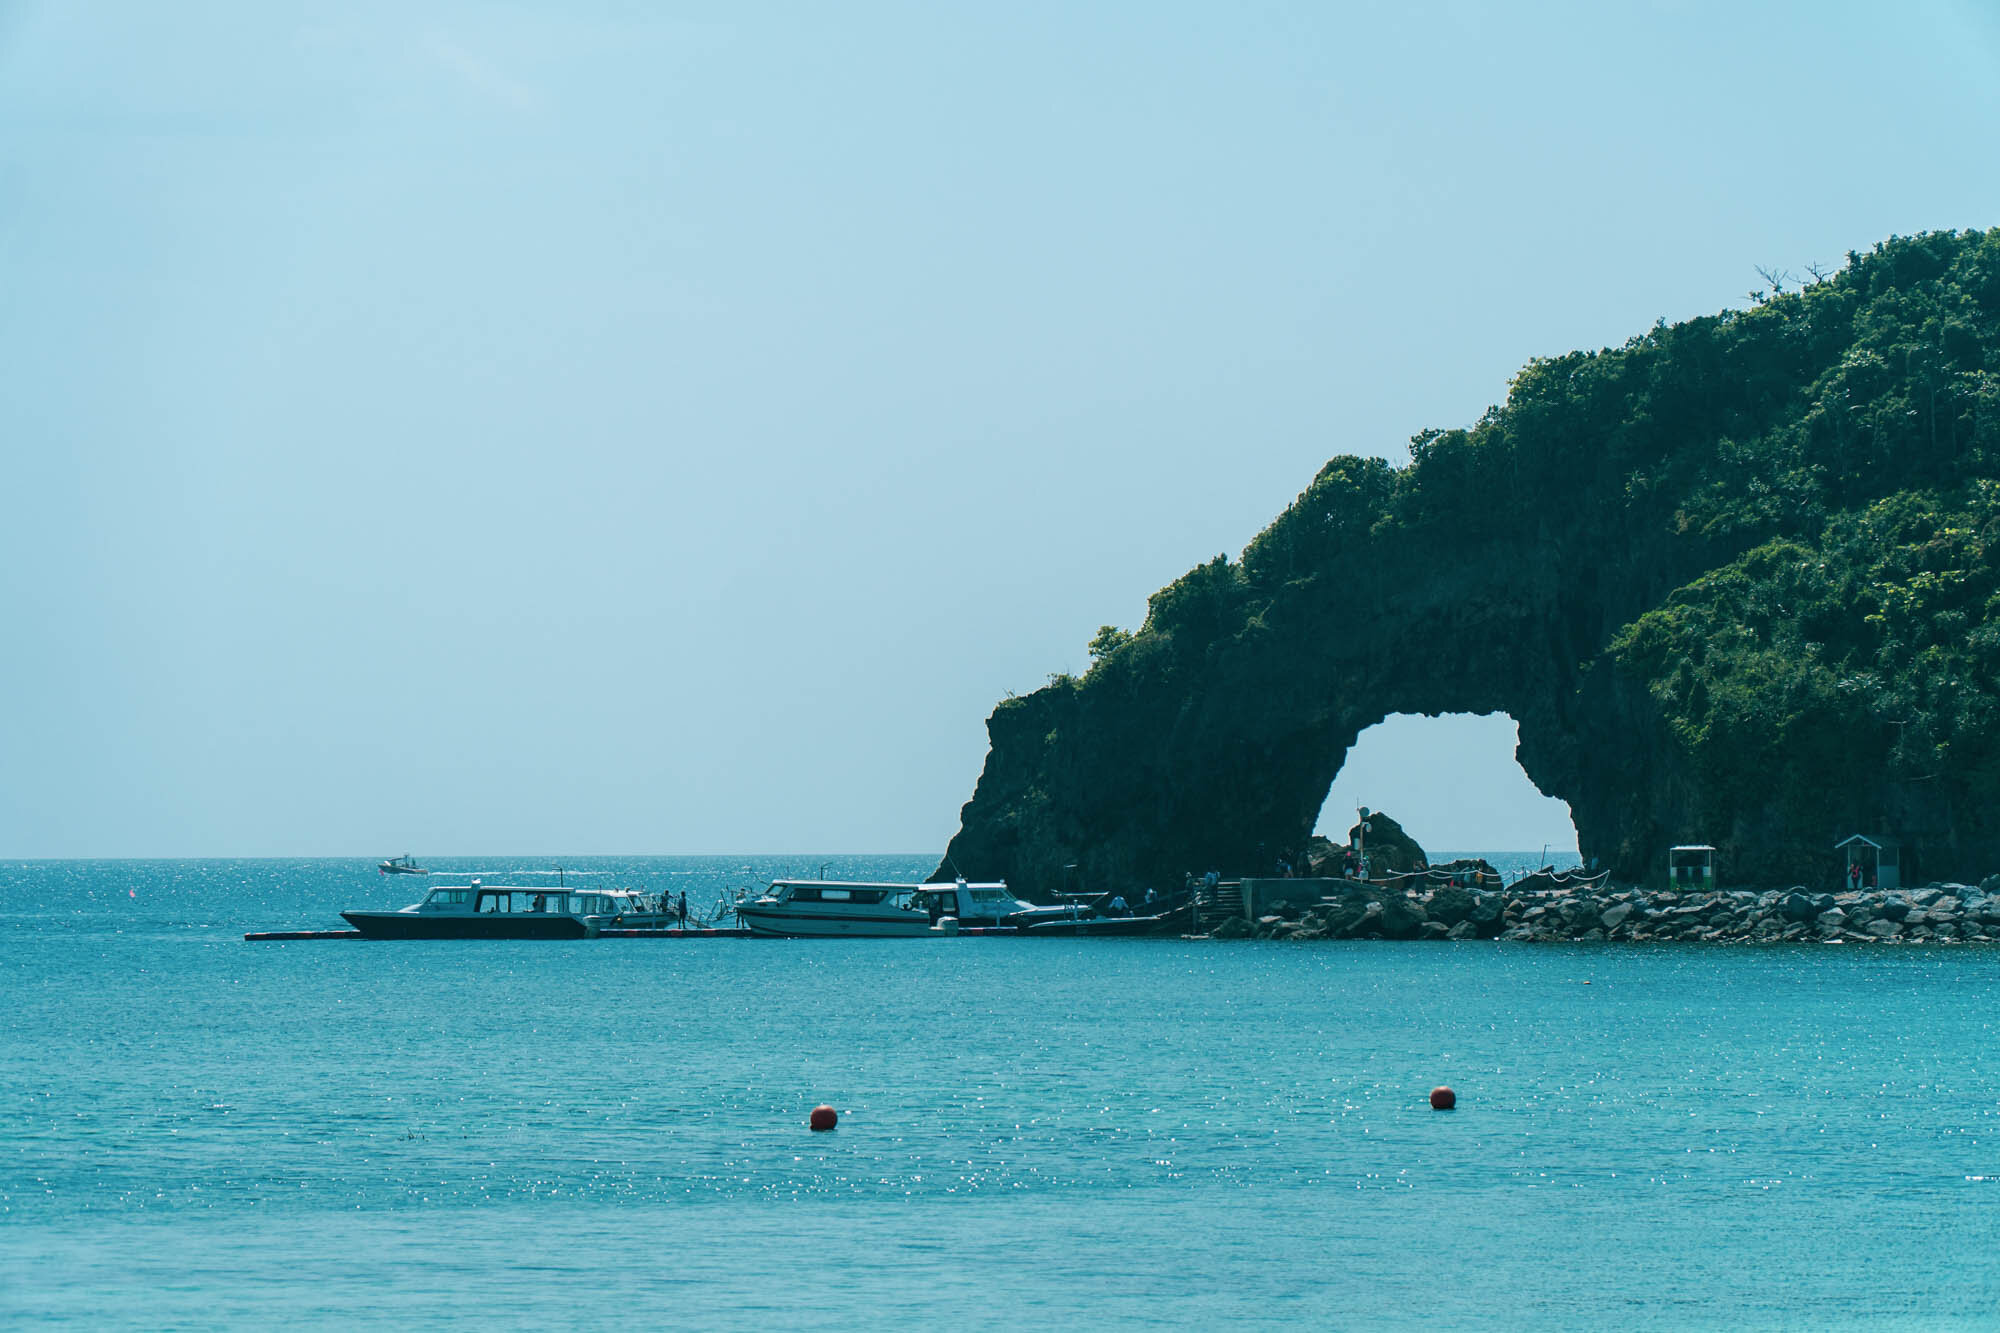 2019, Ilig-Iligan Beach accessed via Boracay Newcoast. This is usually overshadowed by the more popular White Beach so it's pretty quiet and serene, which could change soon once the development of Boracay Newcoast is in full swing. If you decide to go here, make sure to bring your aqua socks. Sand and water are as gorgeous as White Beach but there are rocks under the water which could hurt your feet.